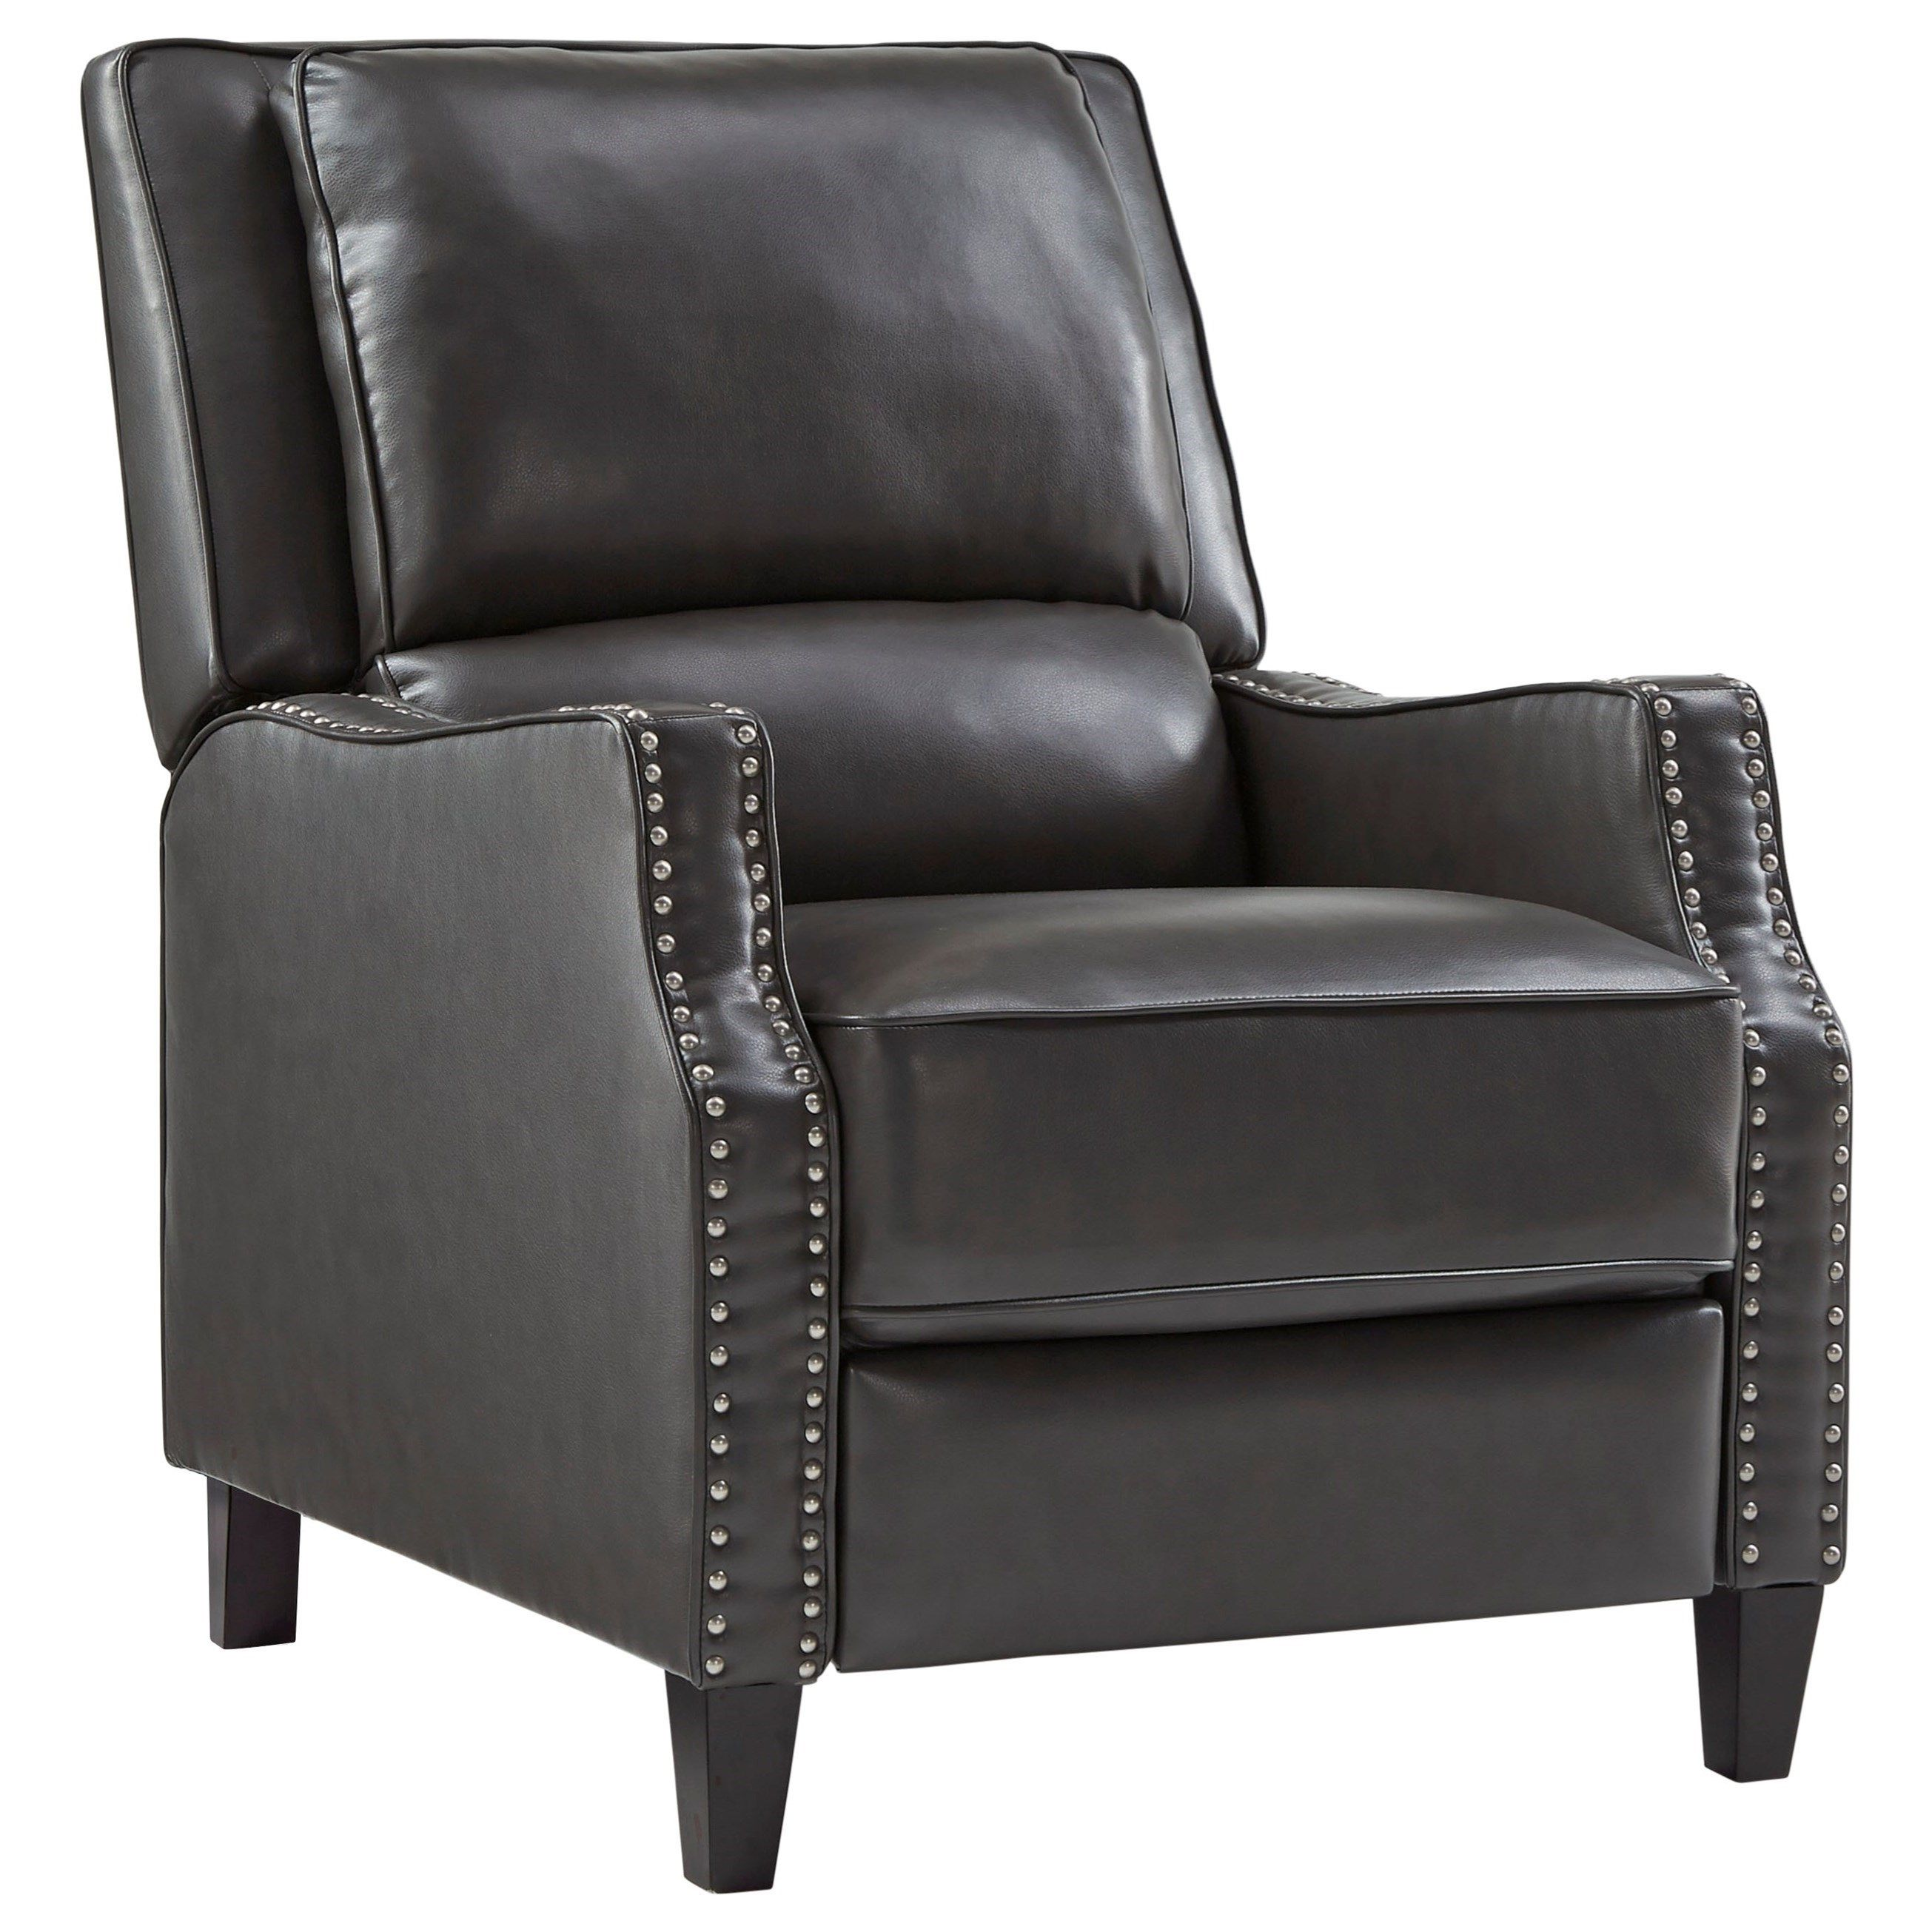 Pin by Tonya Frazier on Home decor Furniture, Recliner